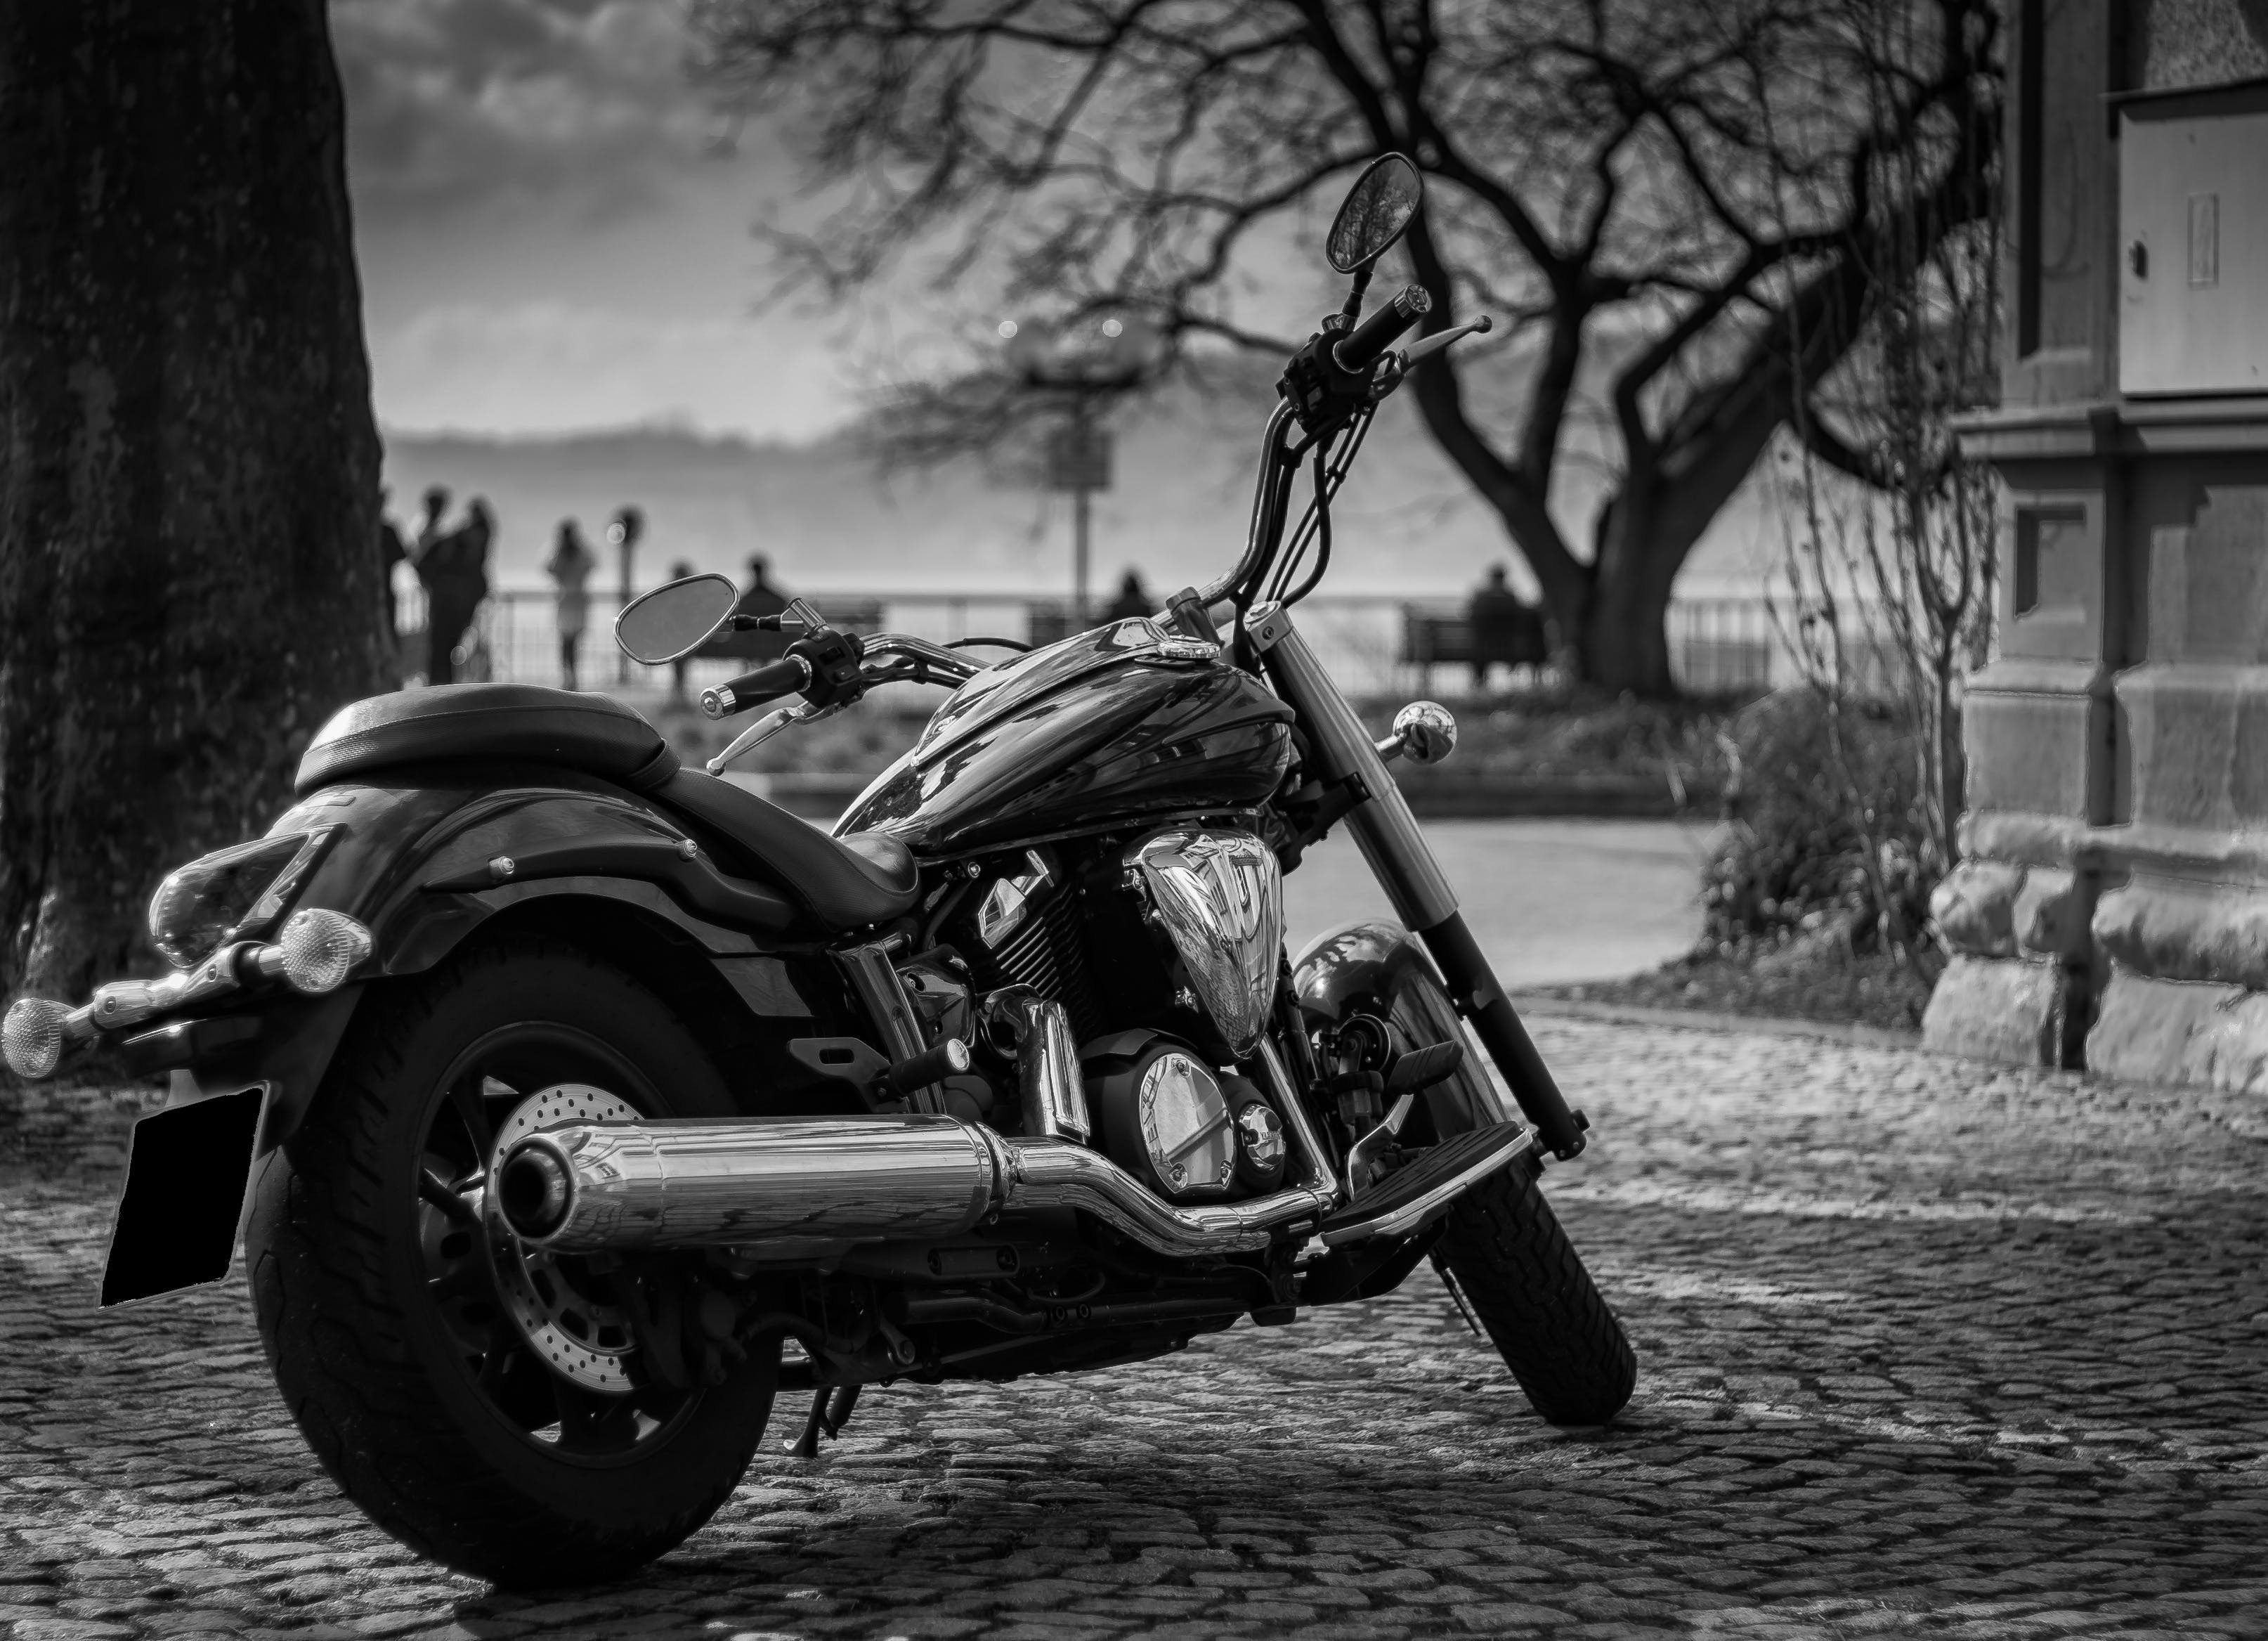 Grayscale Photograph of Black Cruiser Motorcycle Parked Near Tree